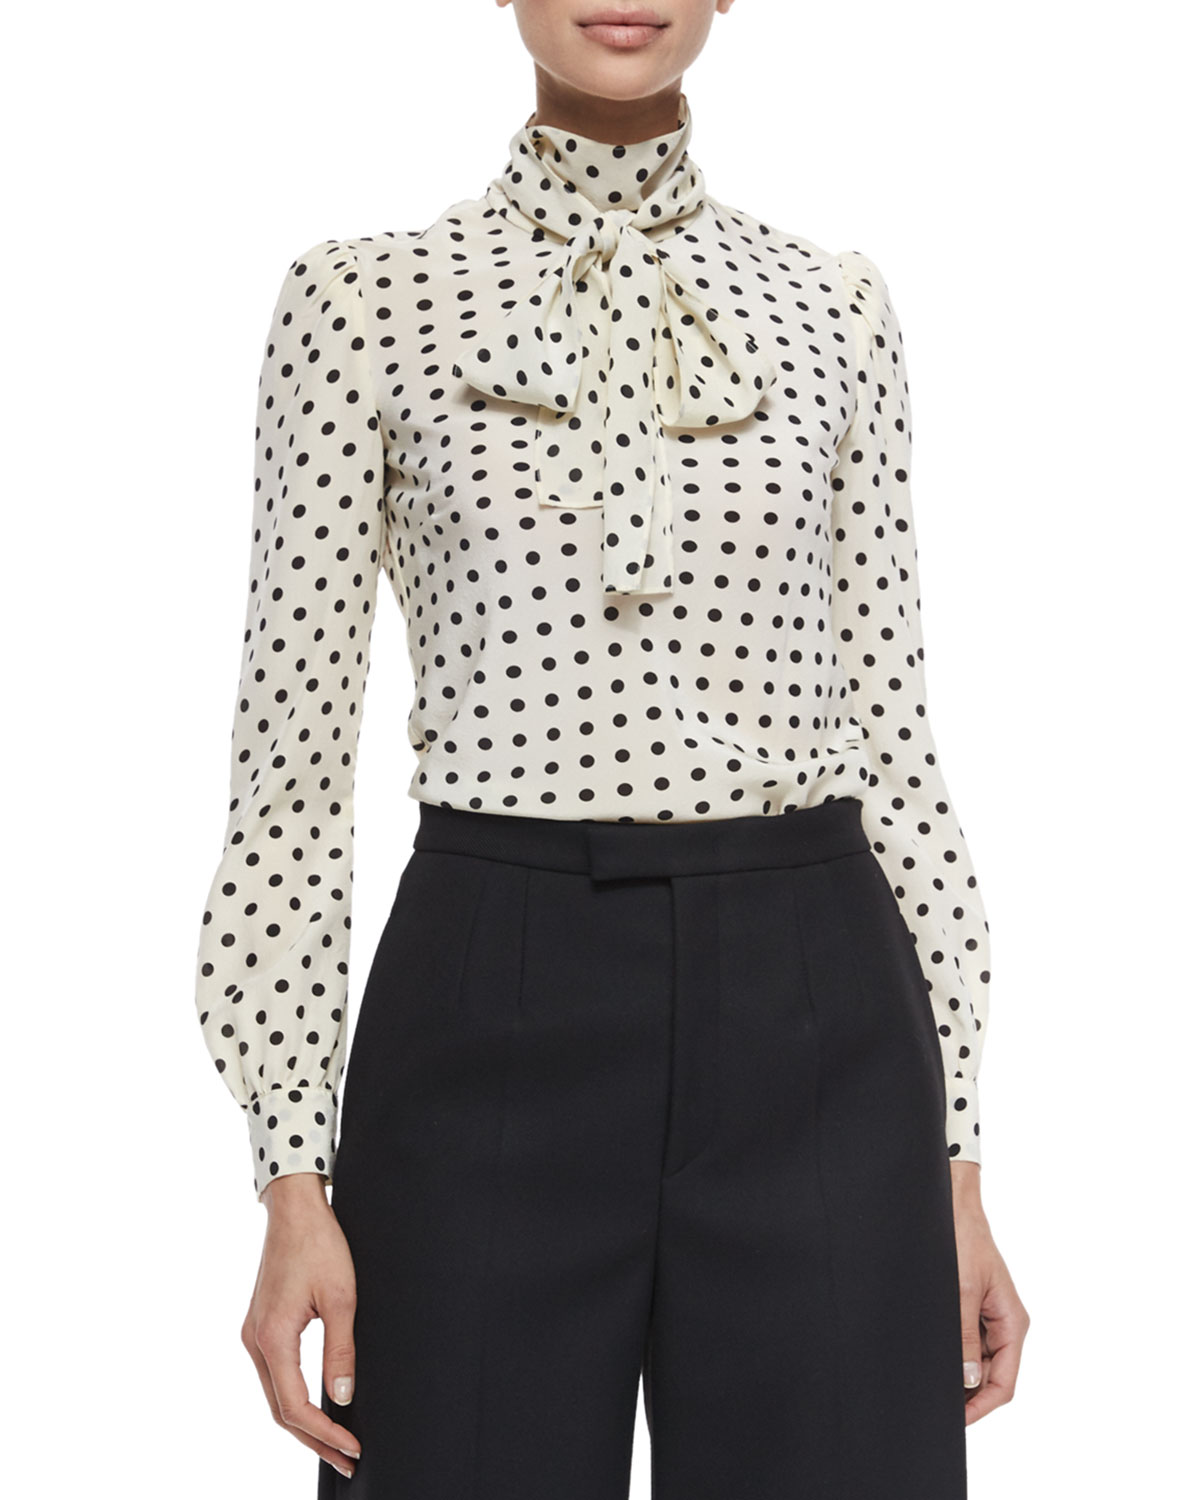 a23b86f3be666 RED Valentino Polka Dot Silk Crepe de Chine Blouse